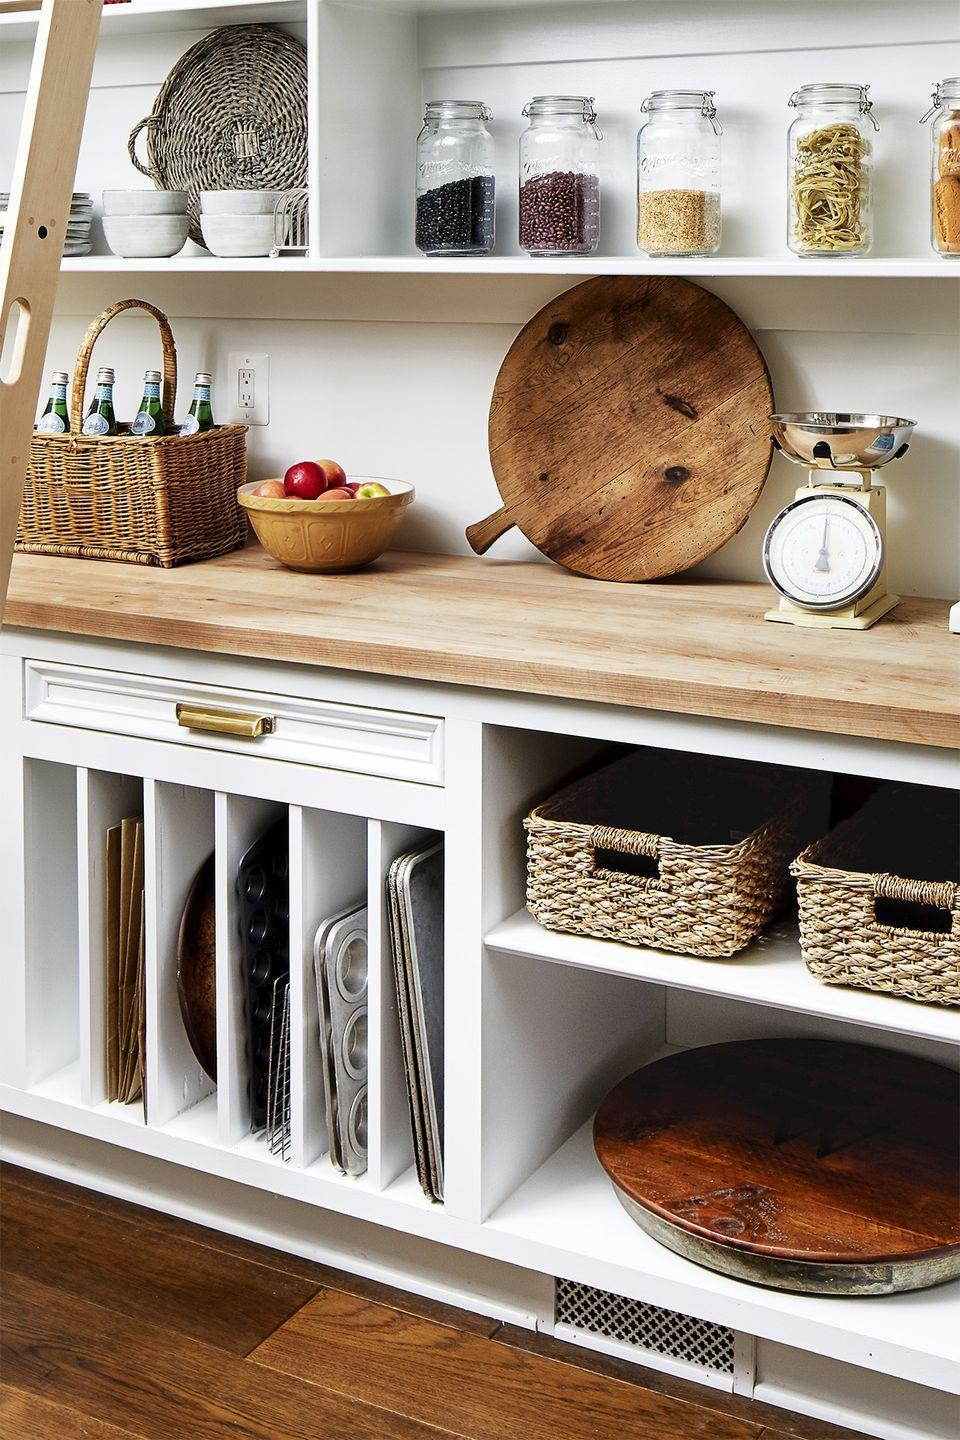 <p>Some kitchen items, like cutting boards and baking pans, are best kept upright, whether for visual appeal or to make them easy to grab.</p>